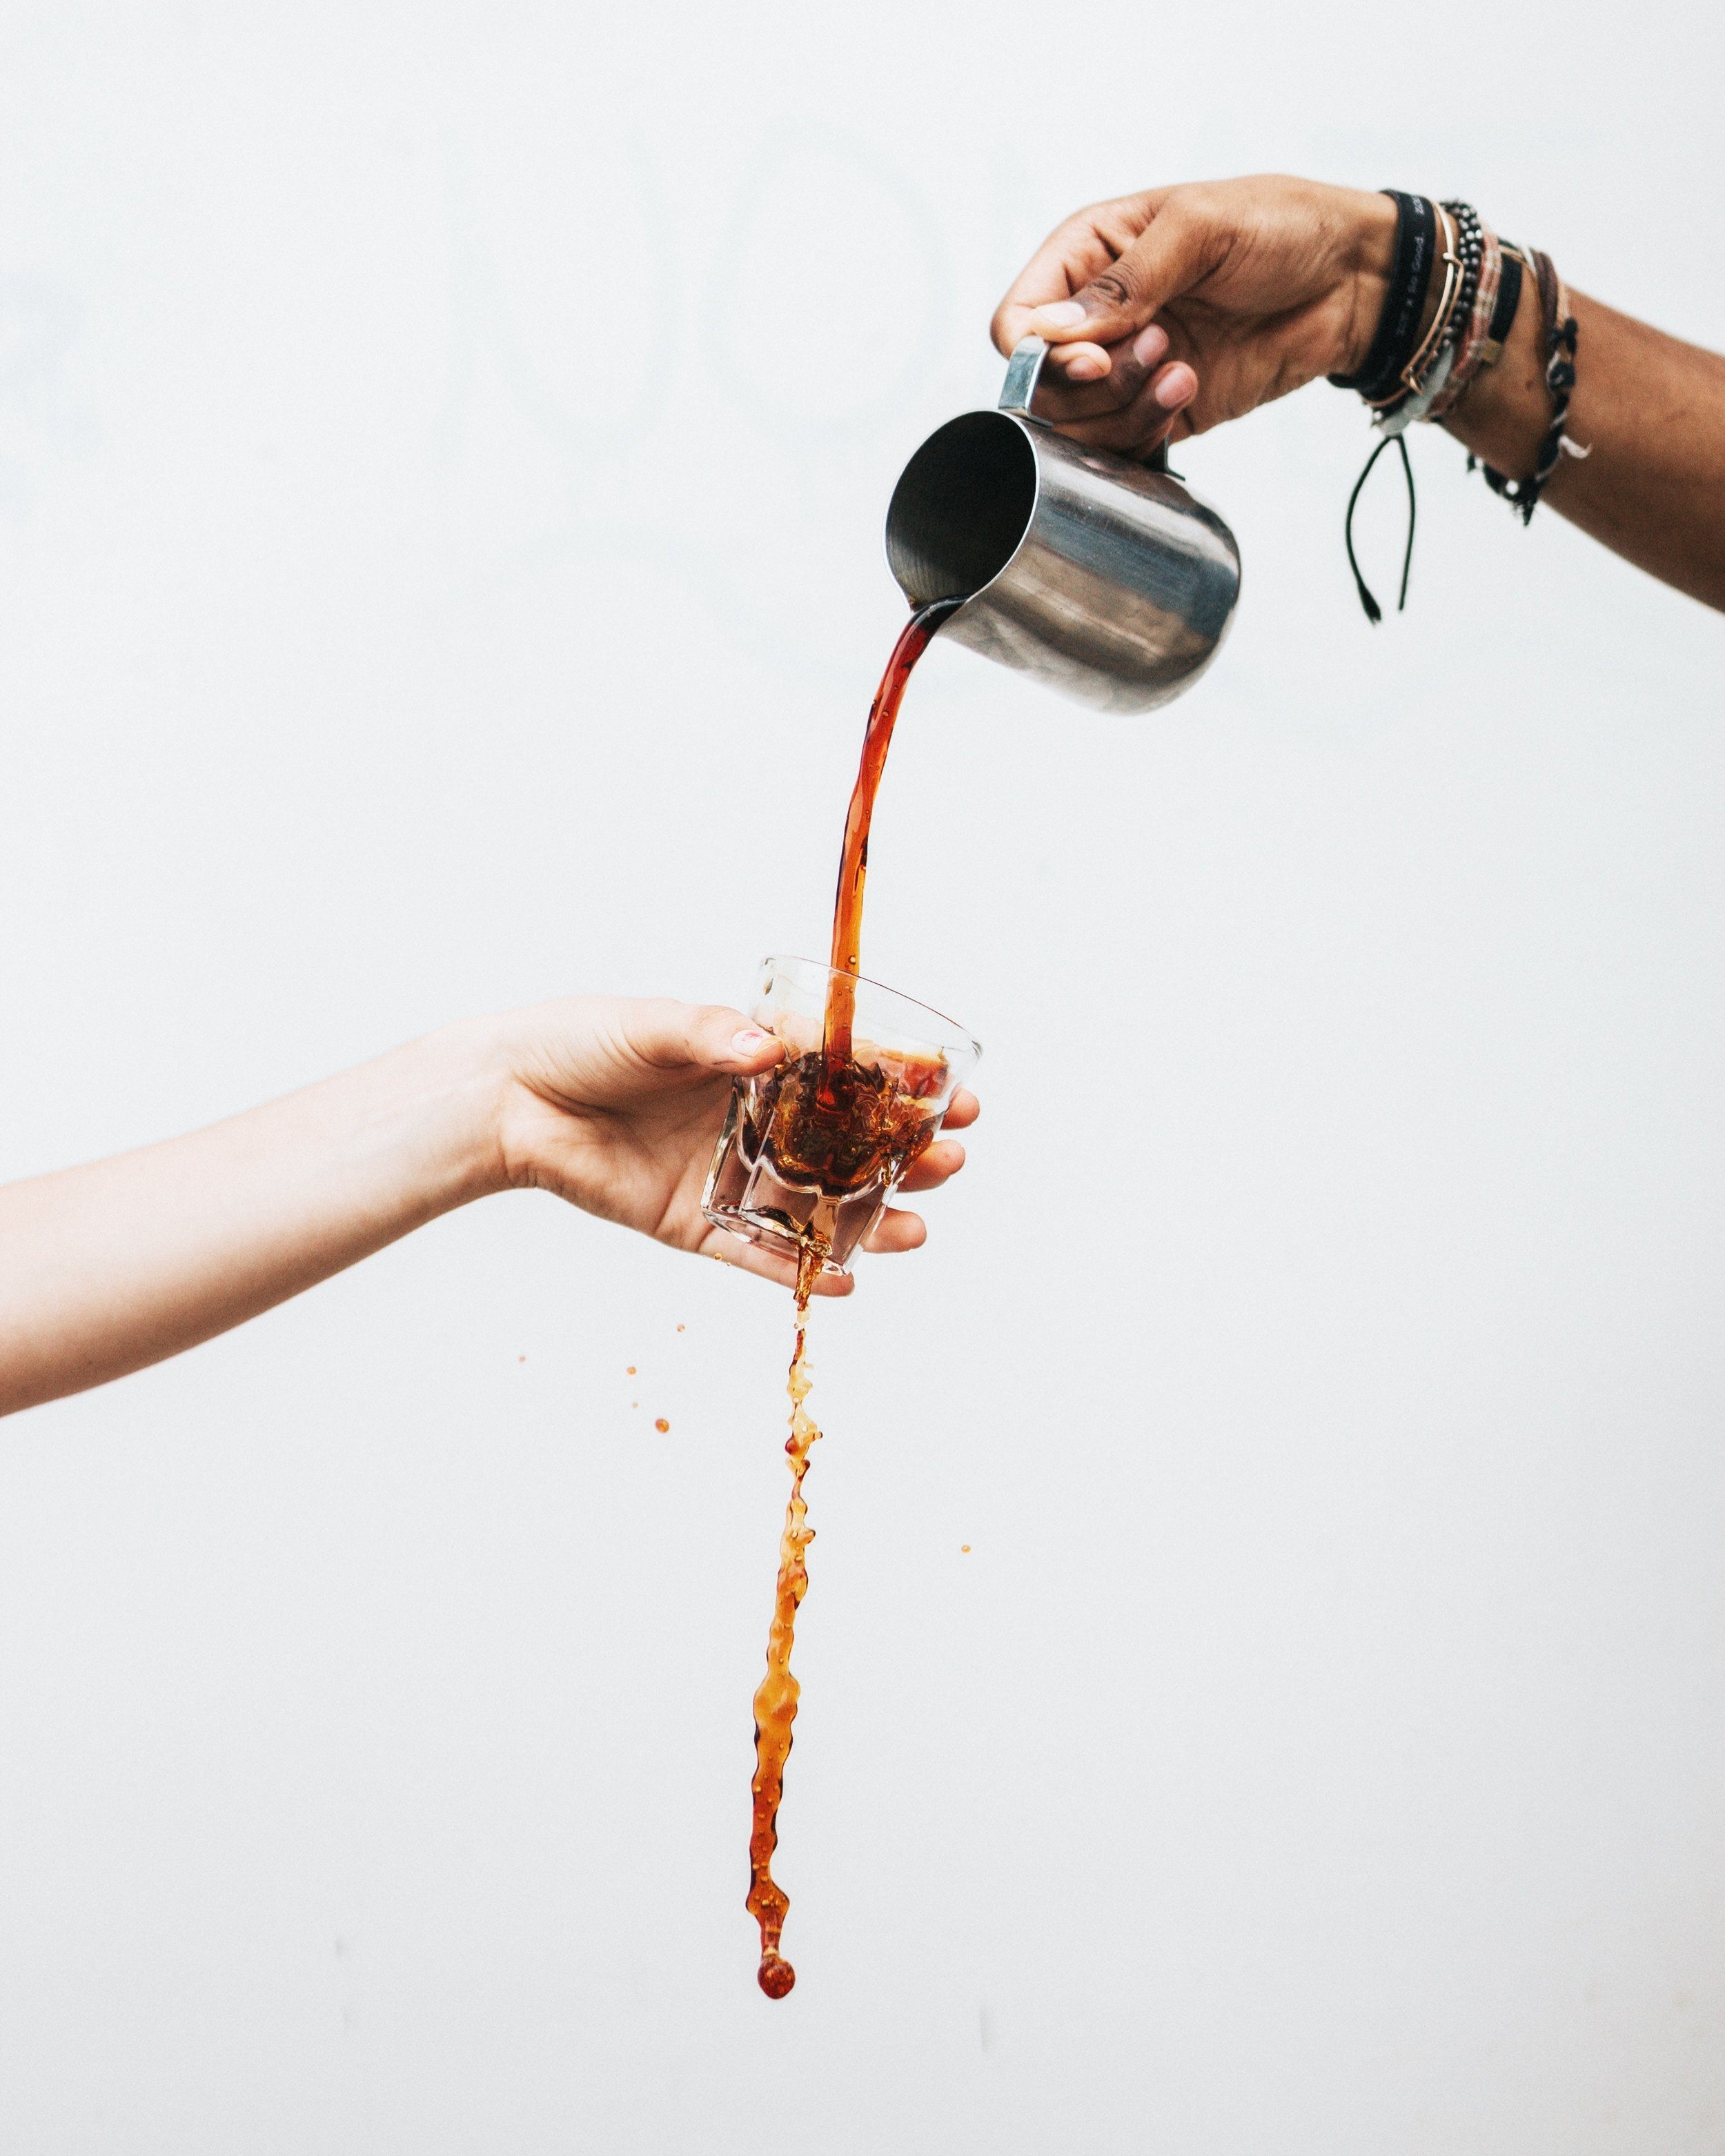 The growing trend of espresso based coffee